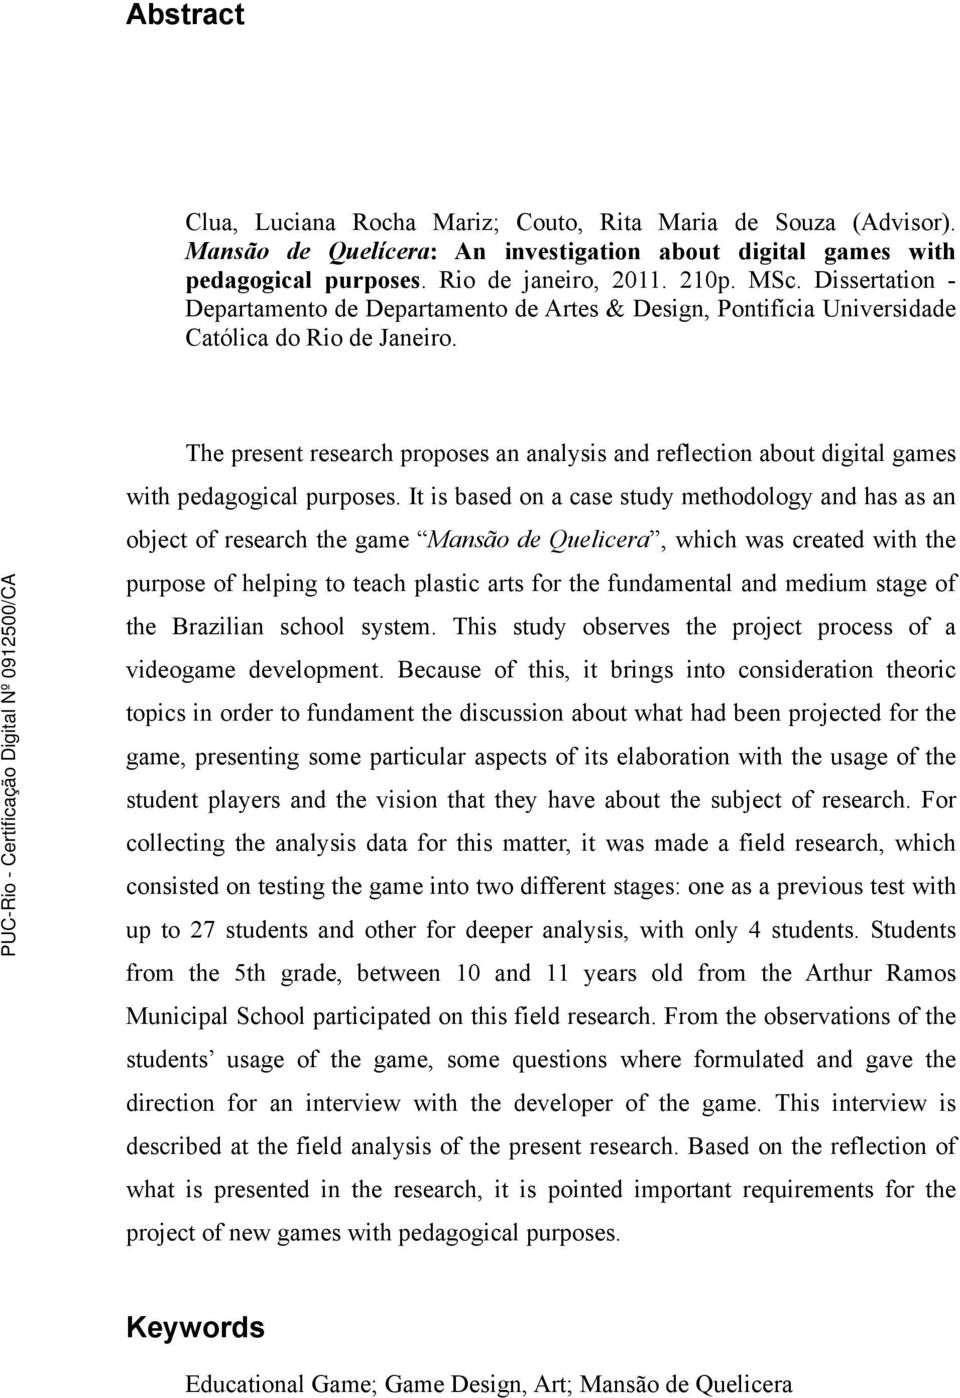 The present research proposes an analysis and reflection about digital games with pedagogical purposes.